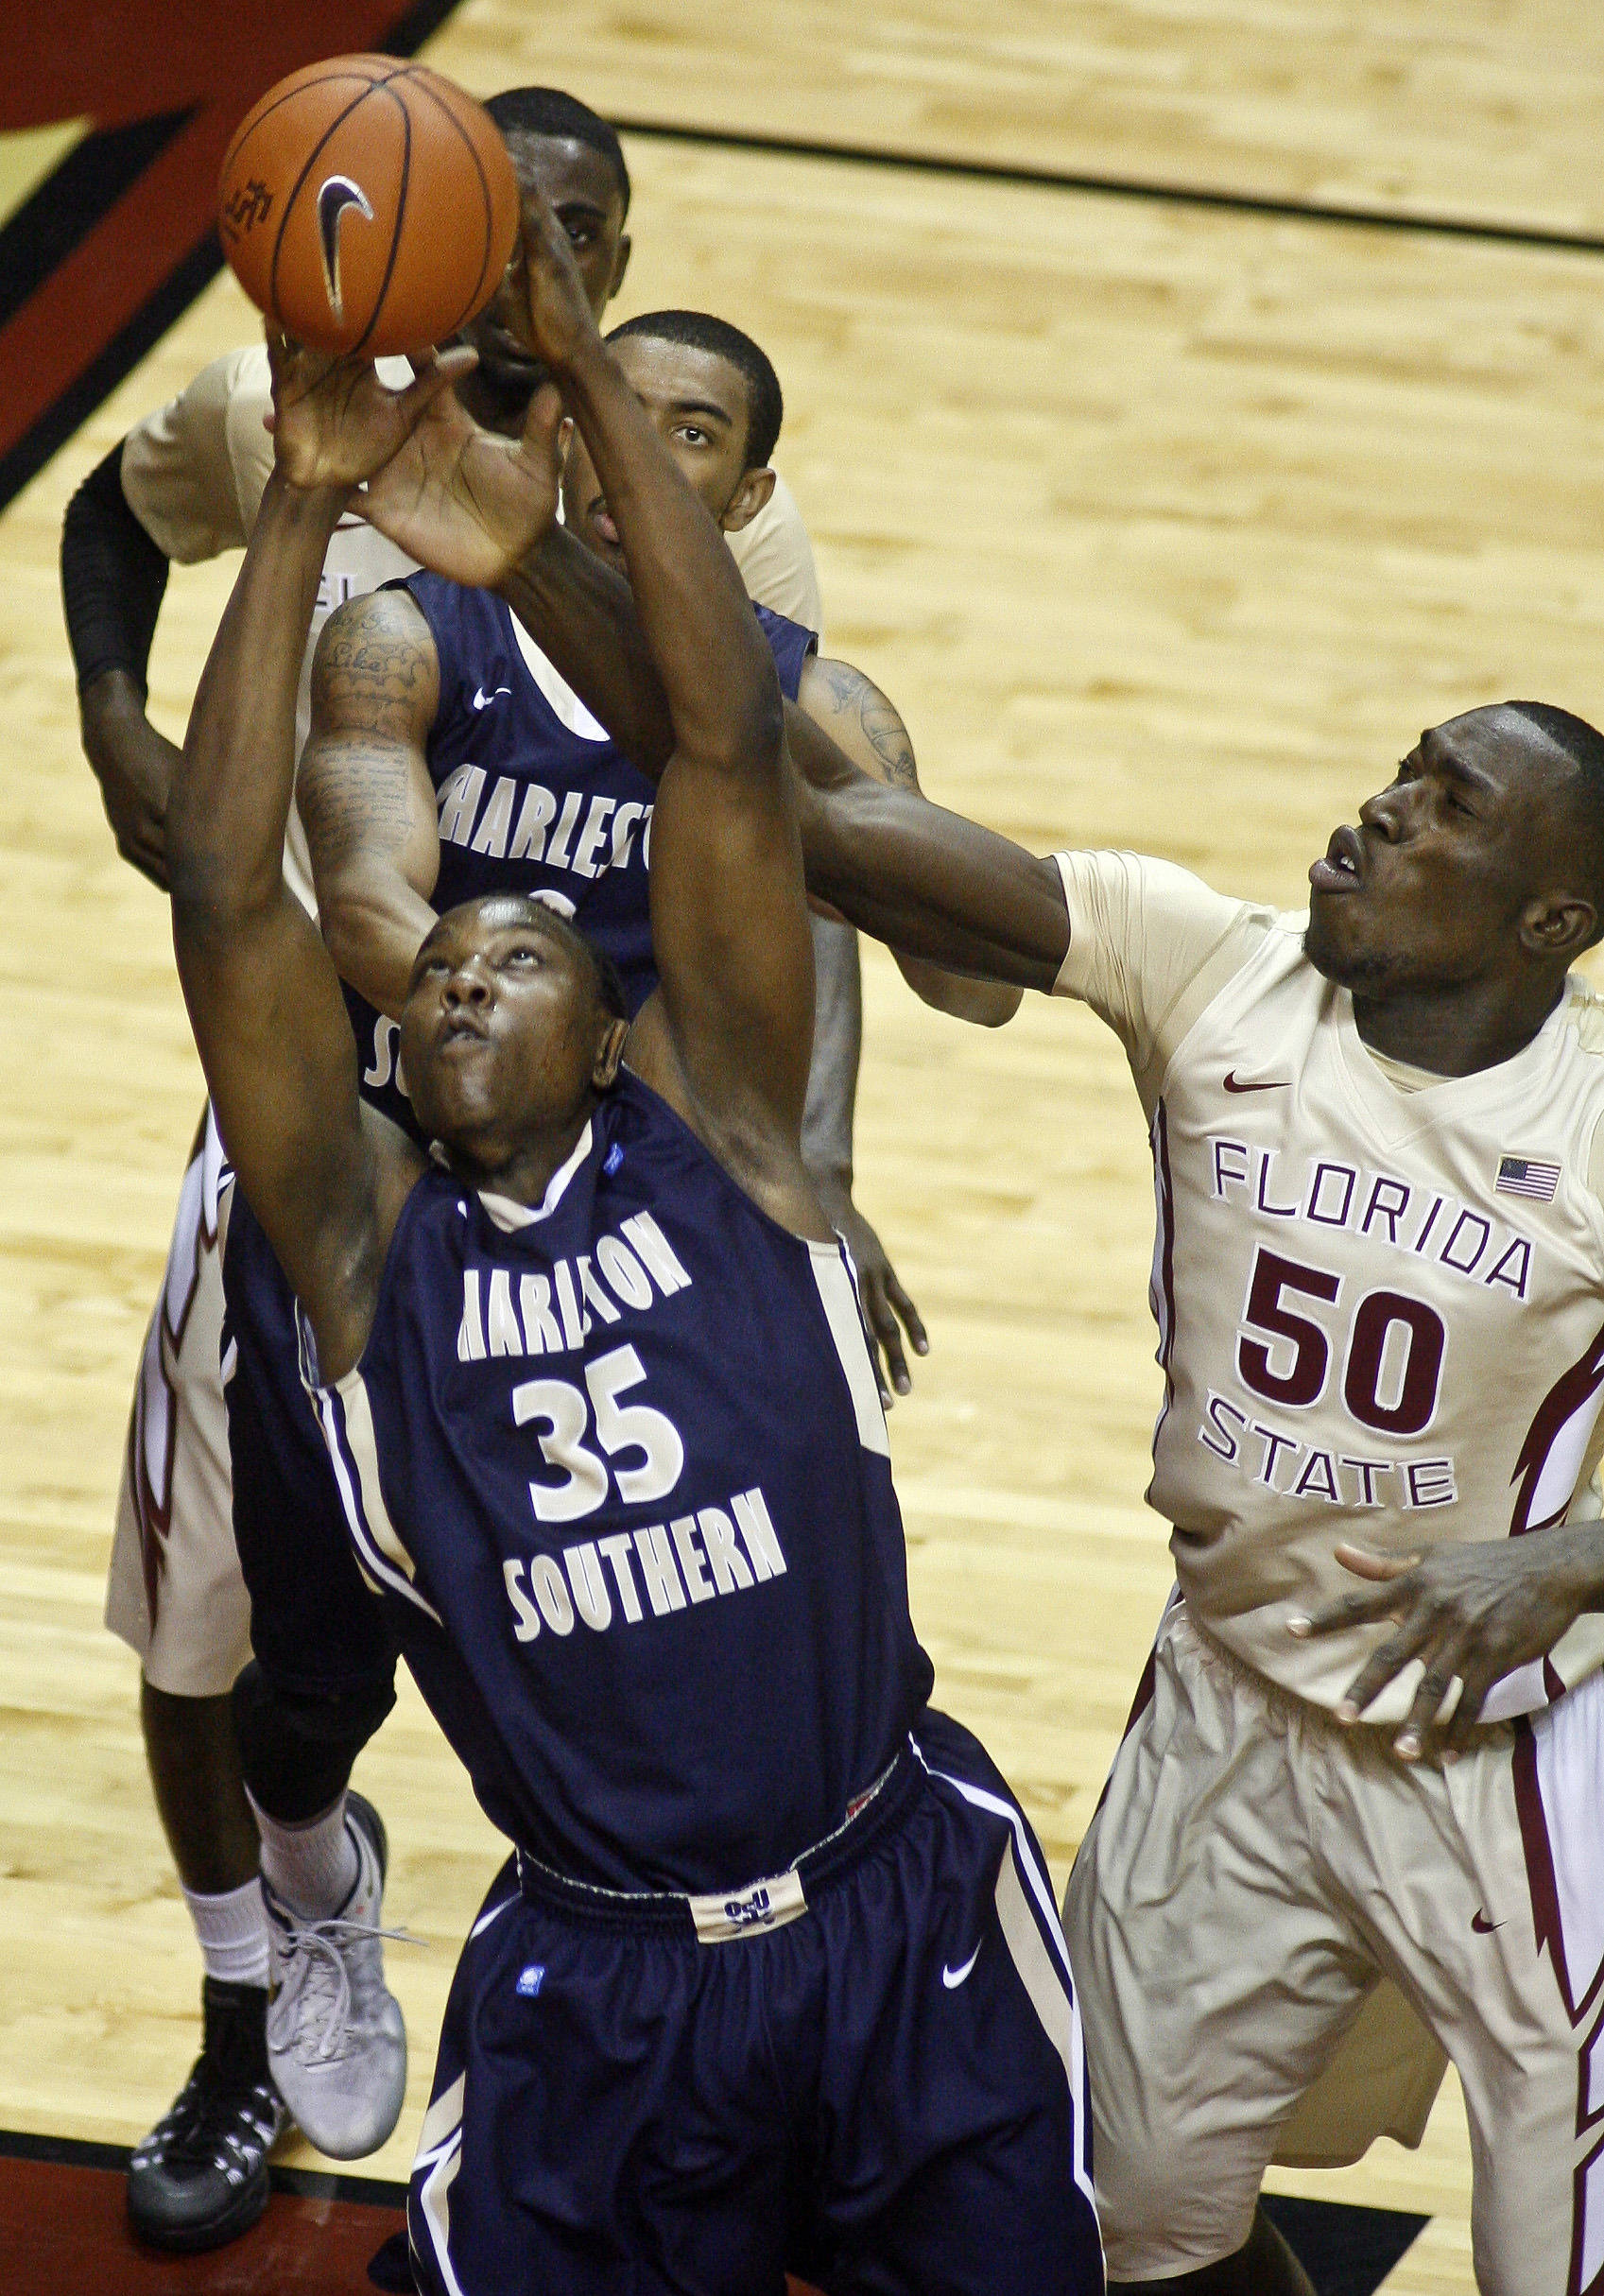 Charleston Southern Buccaneers forward/center Alhaji Fullah (35) fights for a rebound against Florida State Seminoles center Michael Ojo (50). (Phil Sears-USA TODAY Sports)